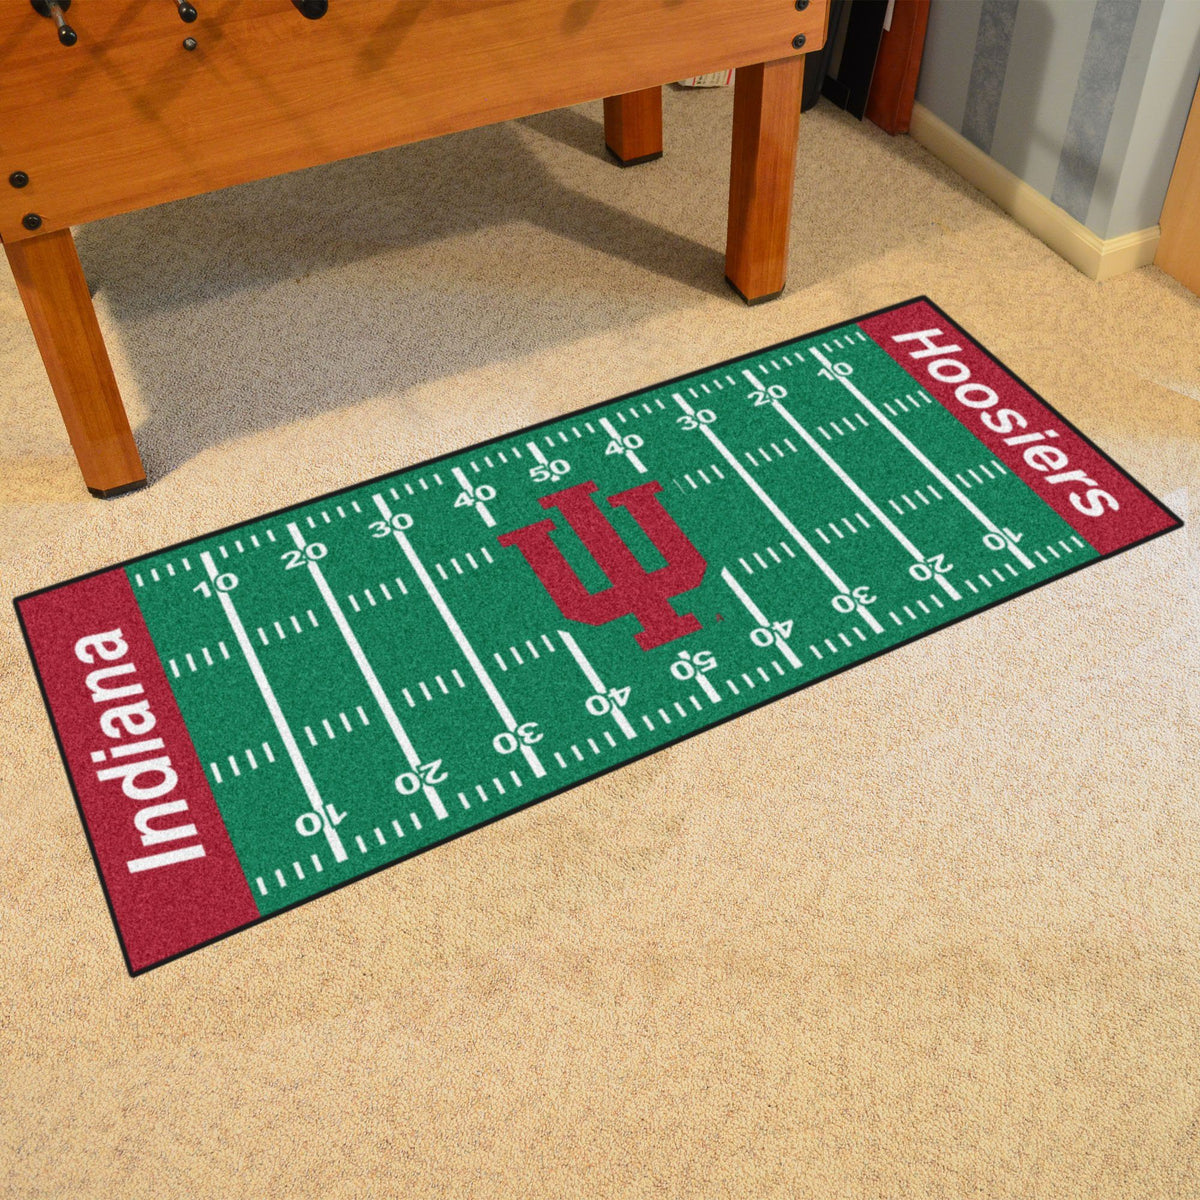 Collegiate - Football Field Runner Collegiate Mats, Rectangular Mats, Football Field Runner, Collegiate, Home Fan Mats Indiana